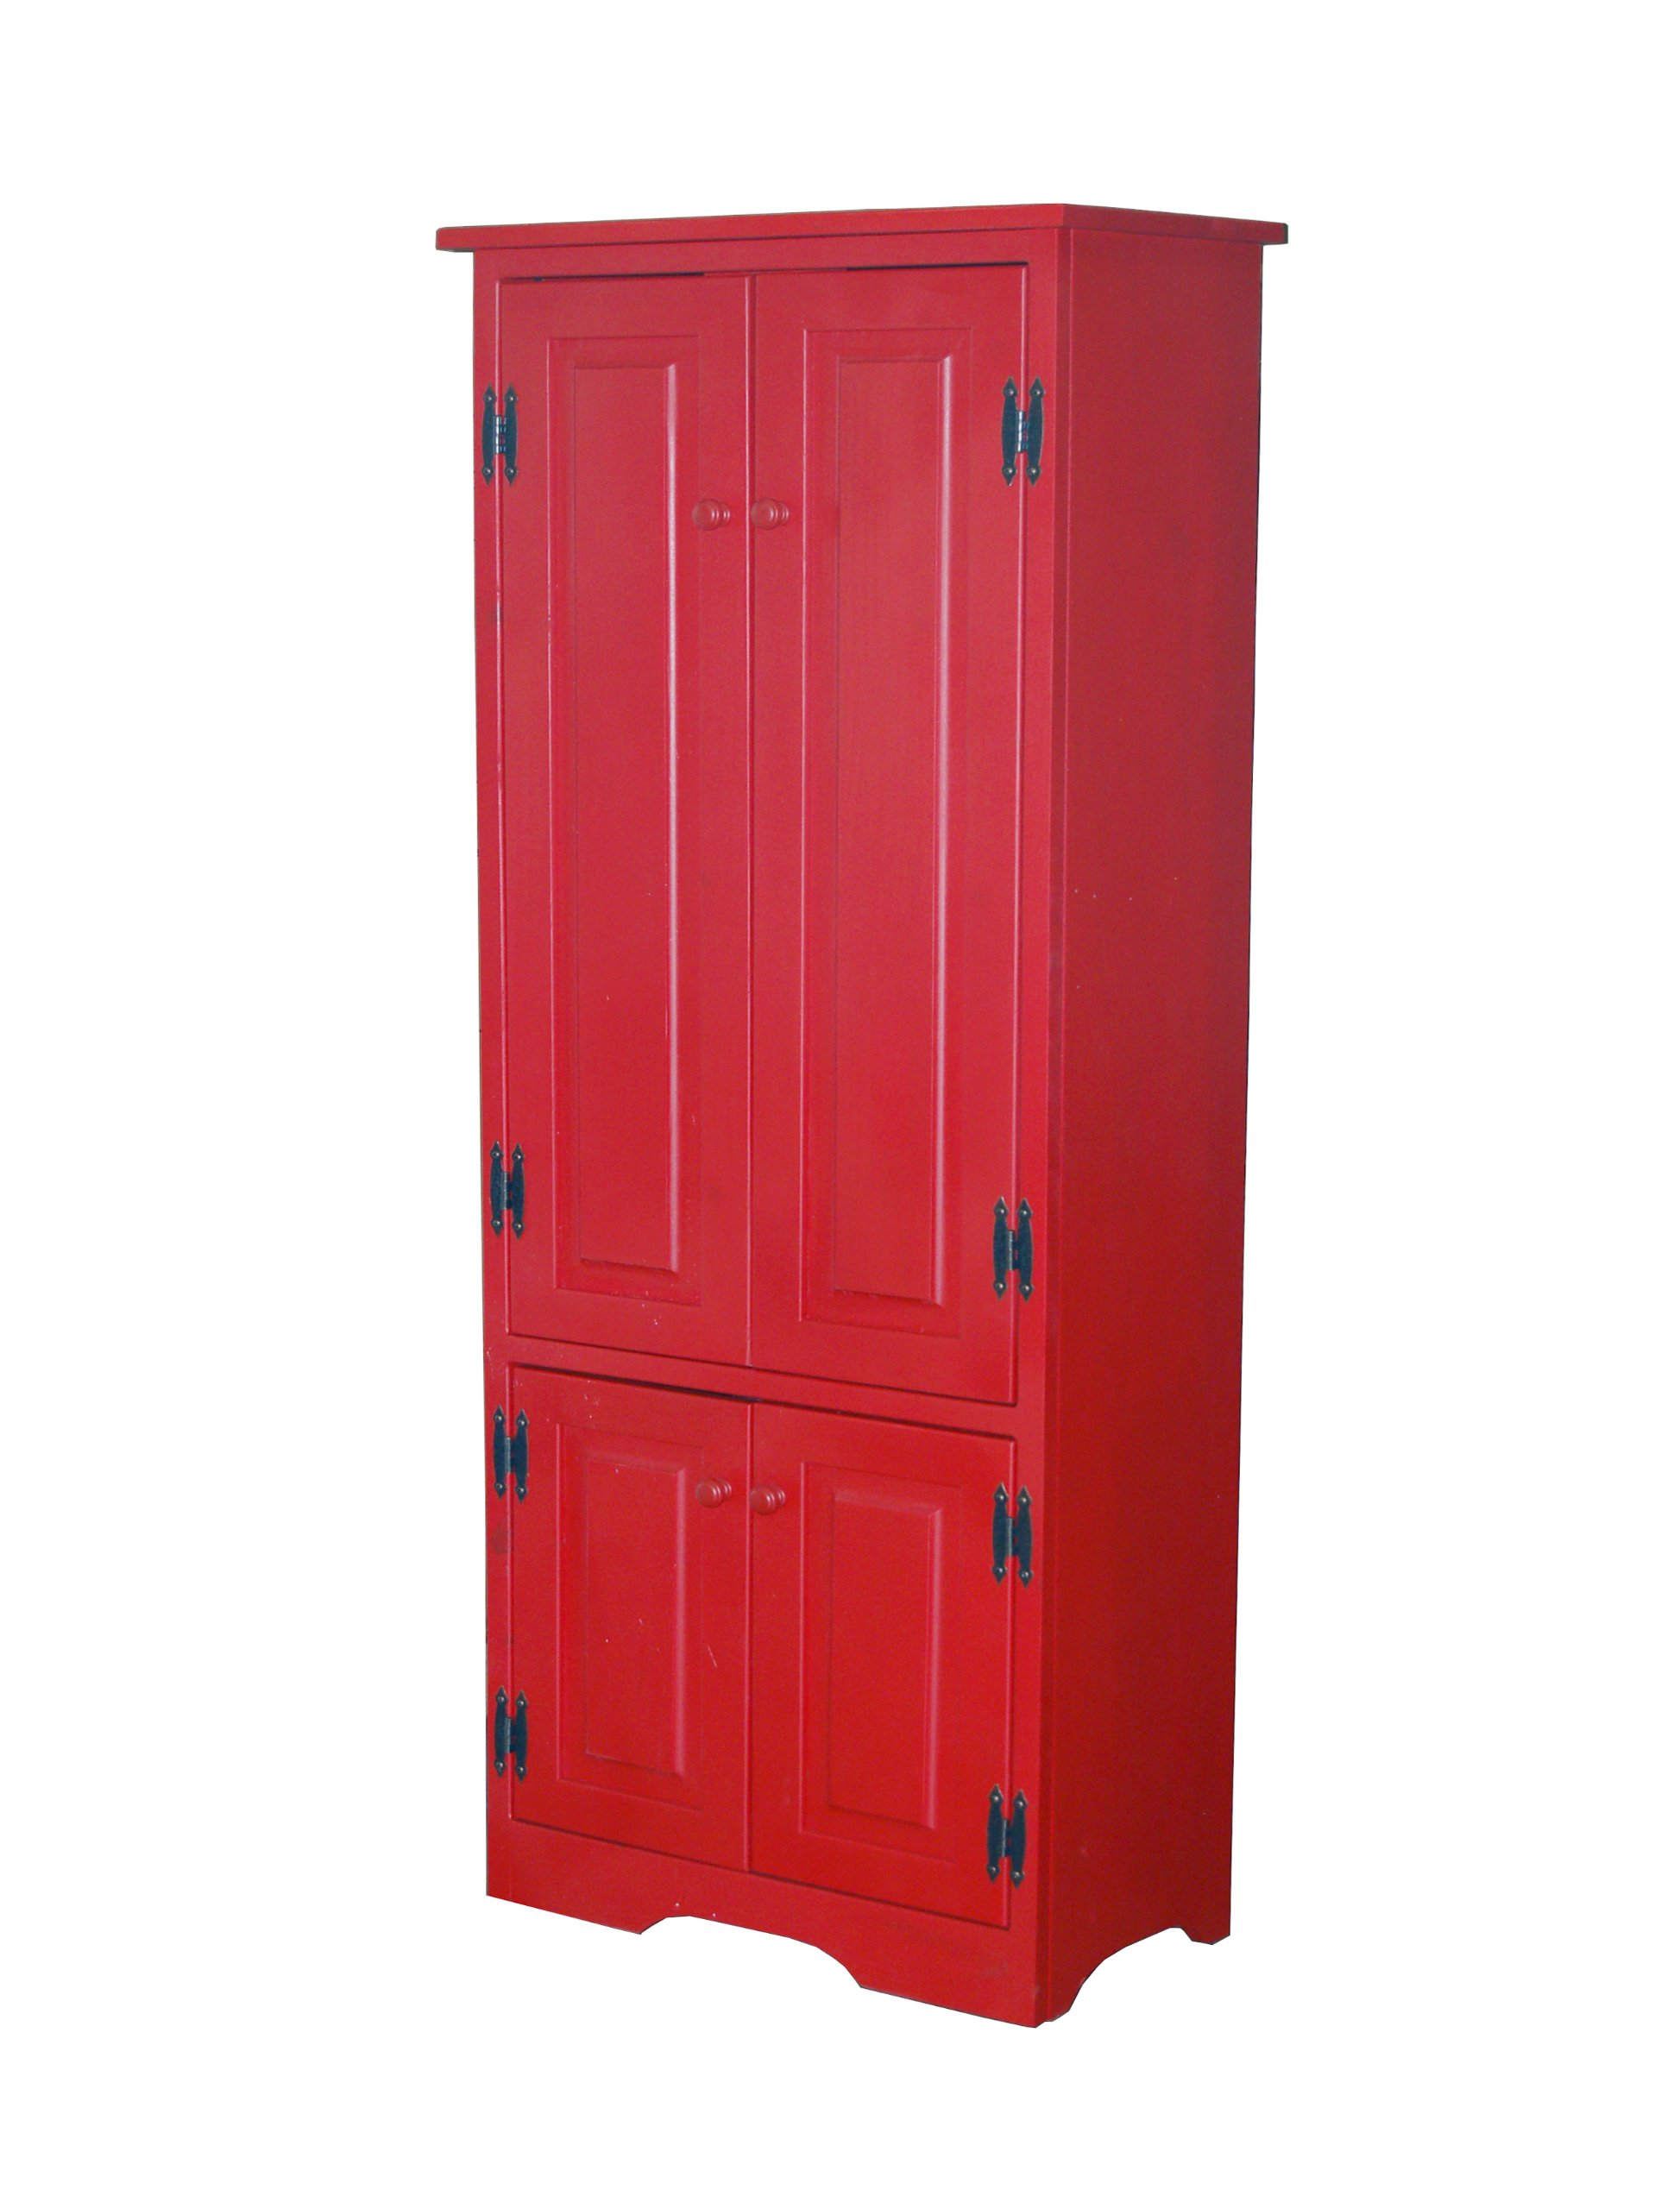 Target Marketing Systems Tall Storage Cabinet with 2 Adjustable Top Shelves and 1 Bottom Shelf, Red by Target Marketing Systems